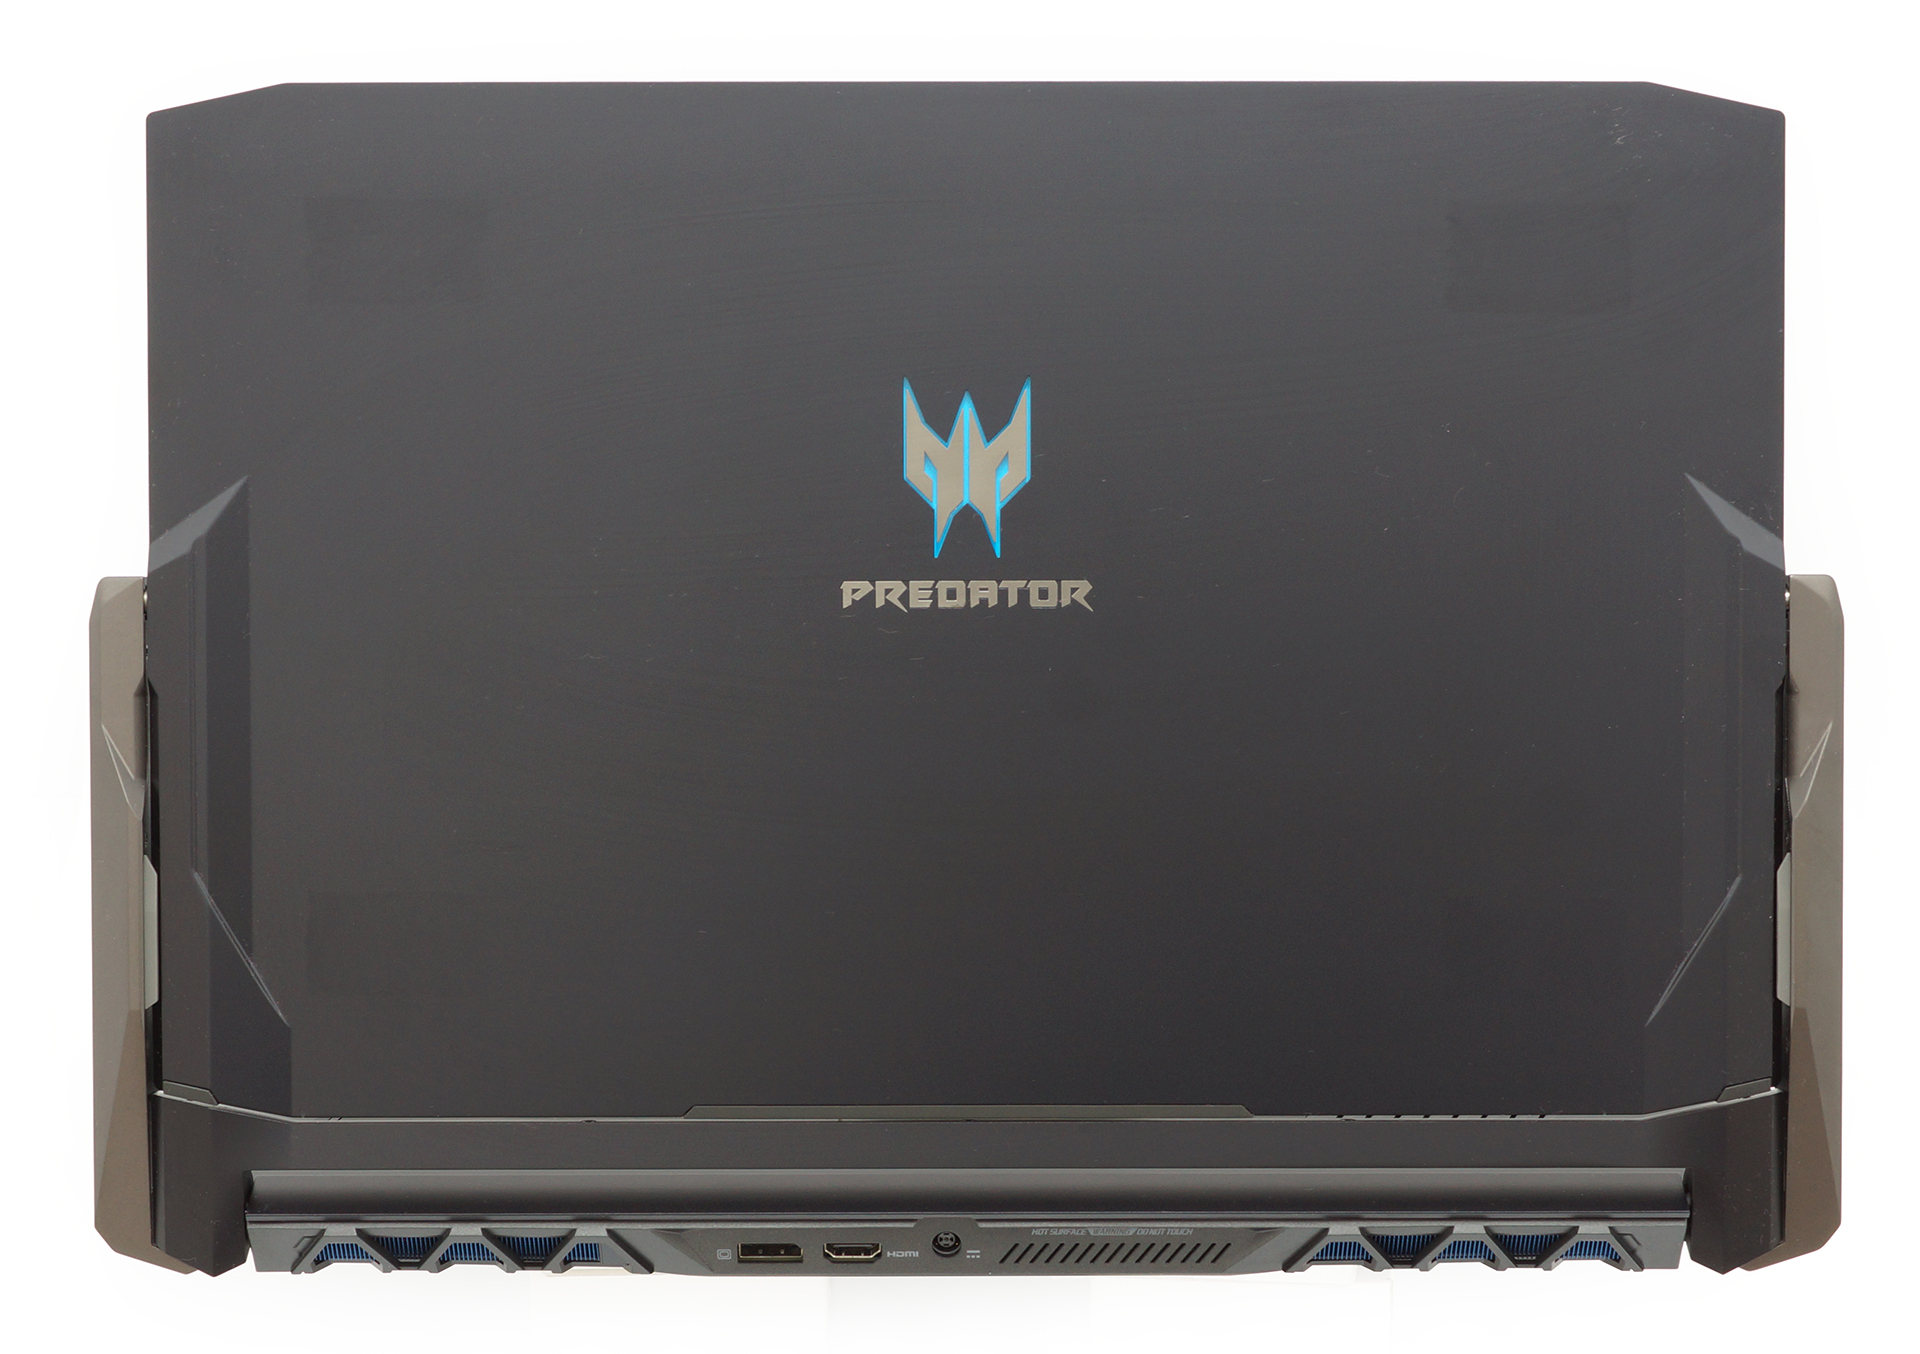 Acer Predator Triton 900 review – the king of convertibles